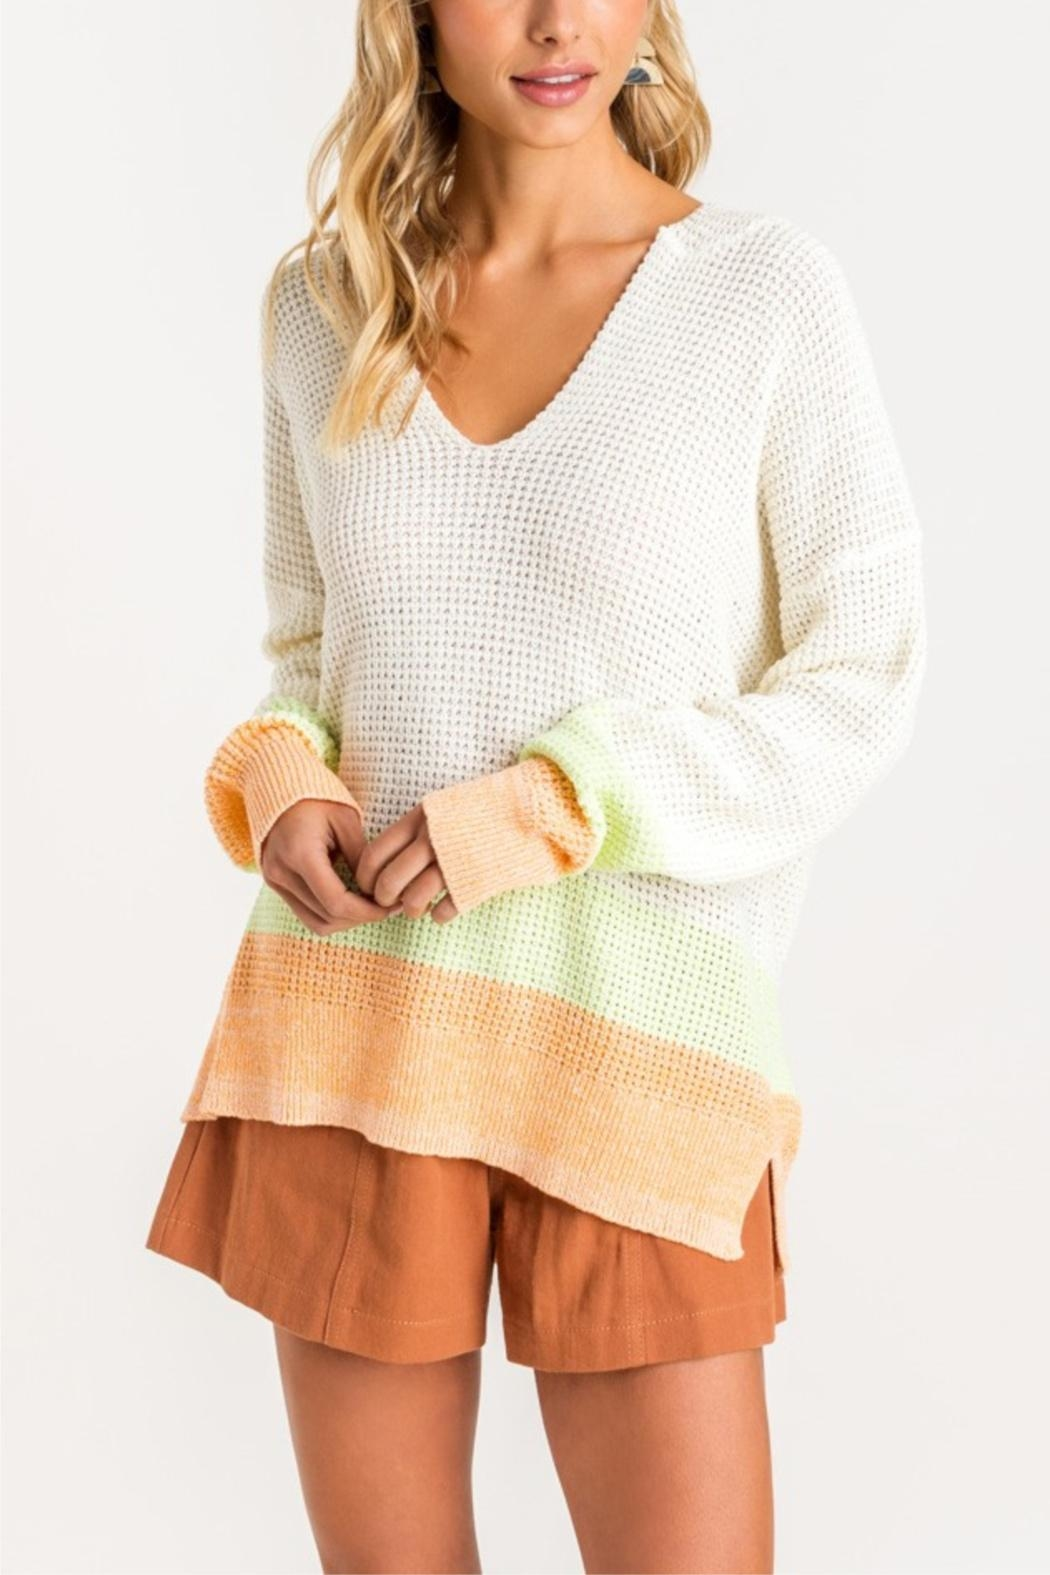 Lush Sherbert Dreams Sweater - Main Image